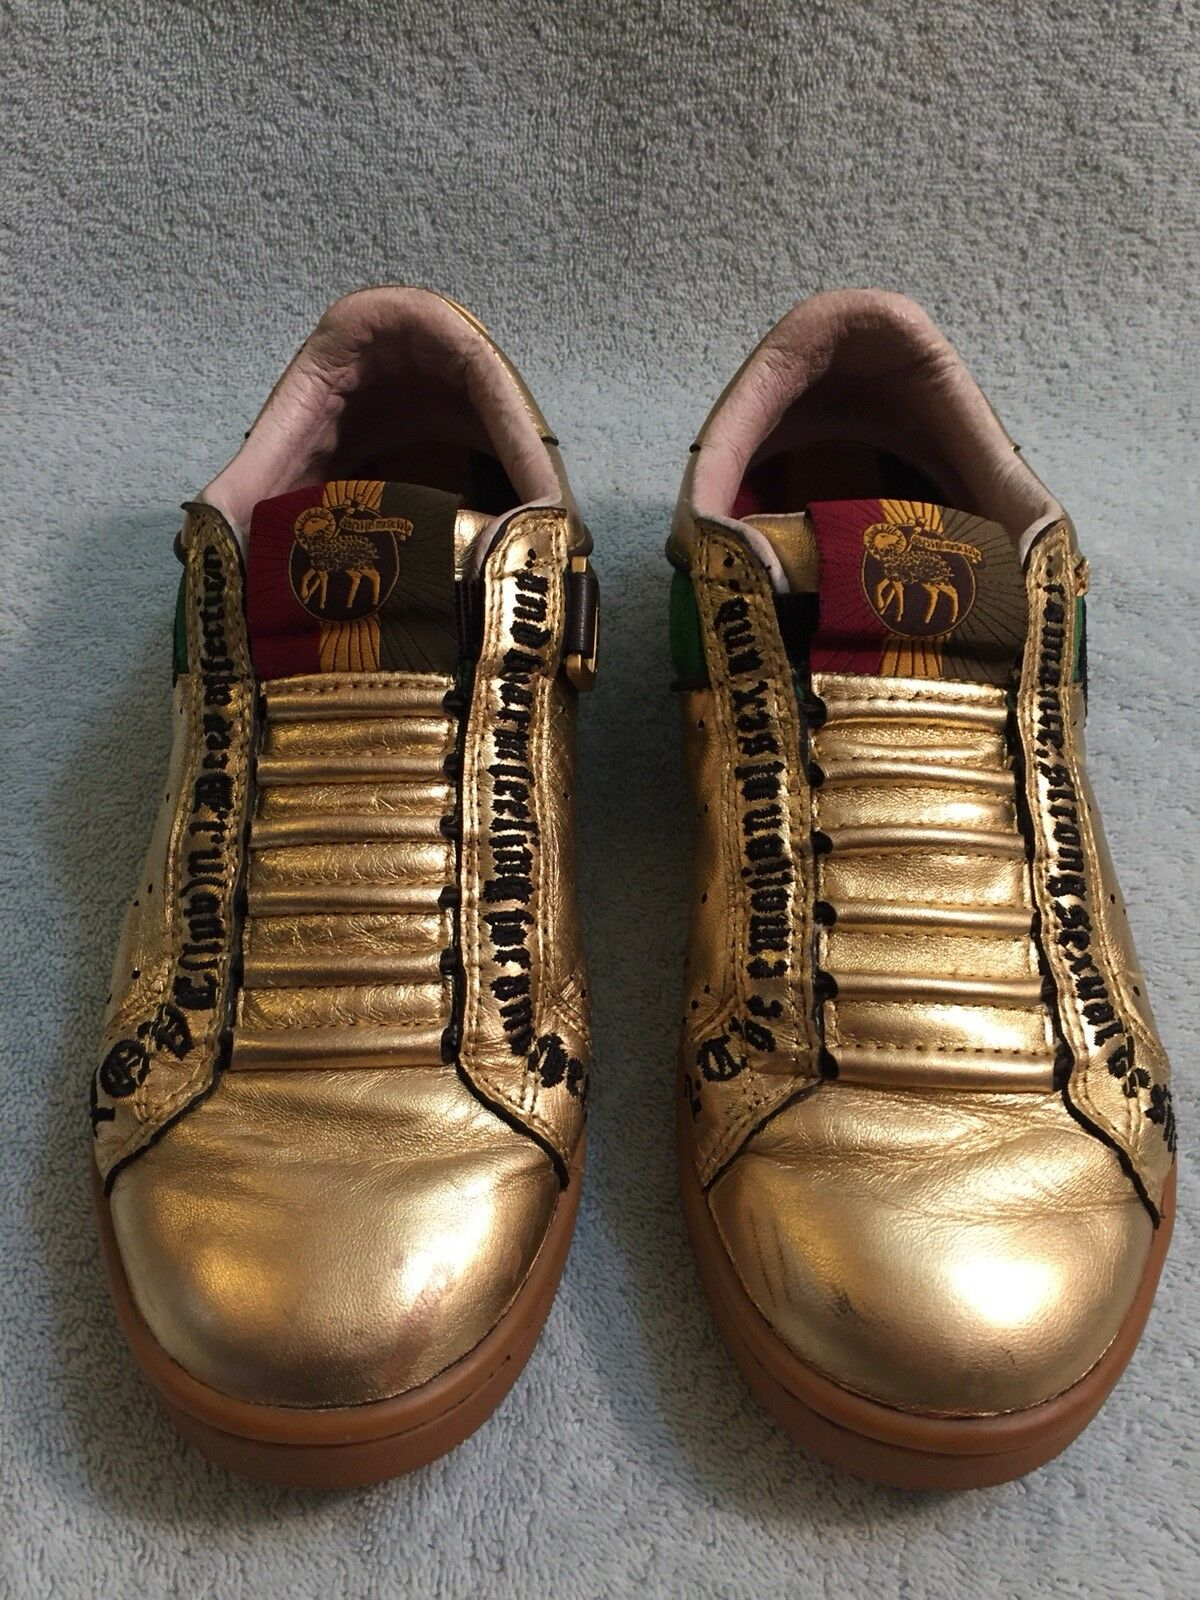 Gwen Stefani LAMB gold gold gold Leather Sneakers Size 8 M For Women e40505